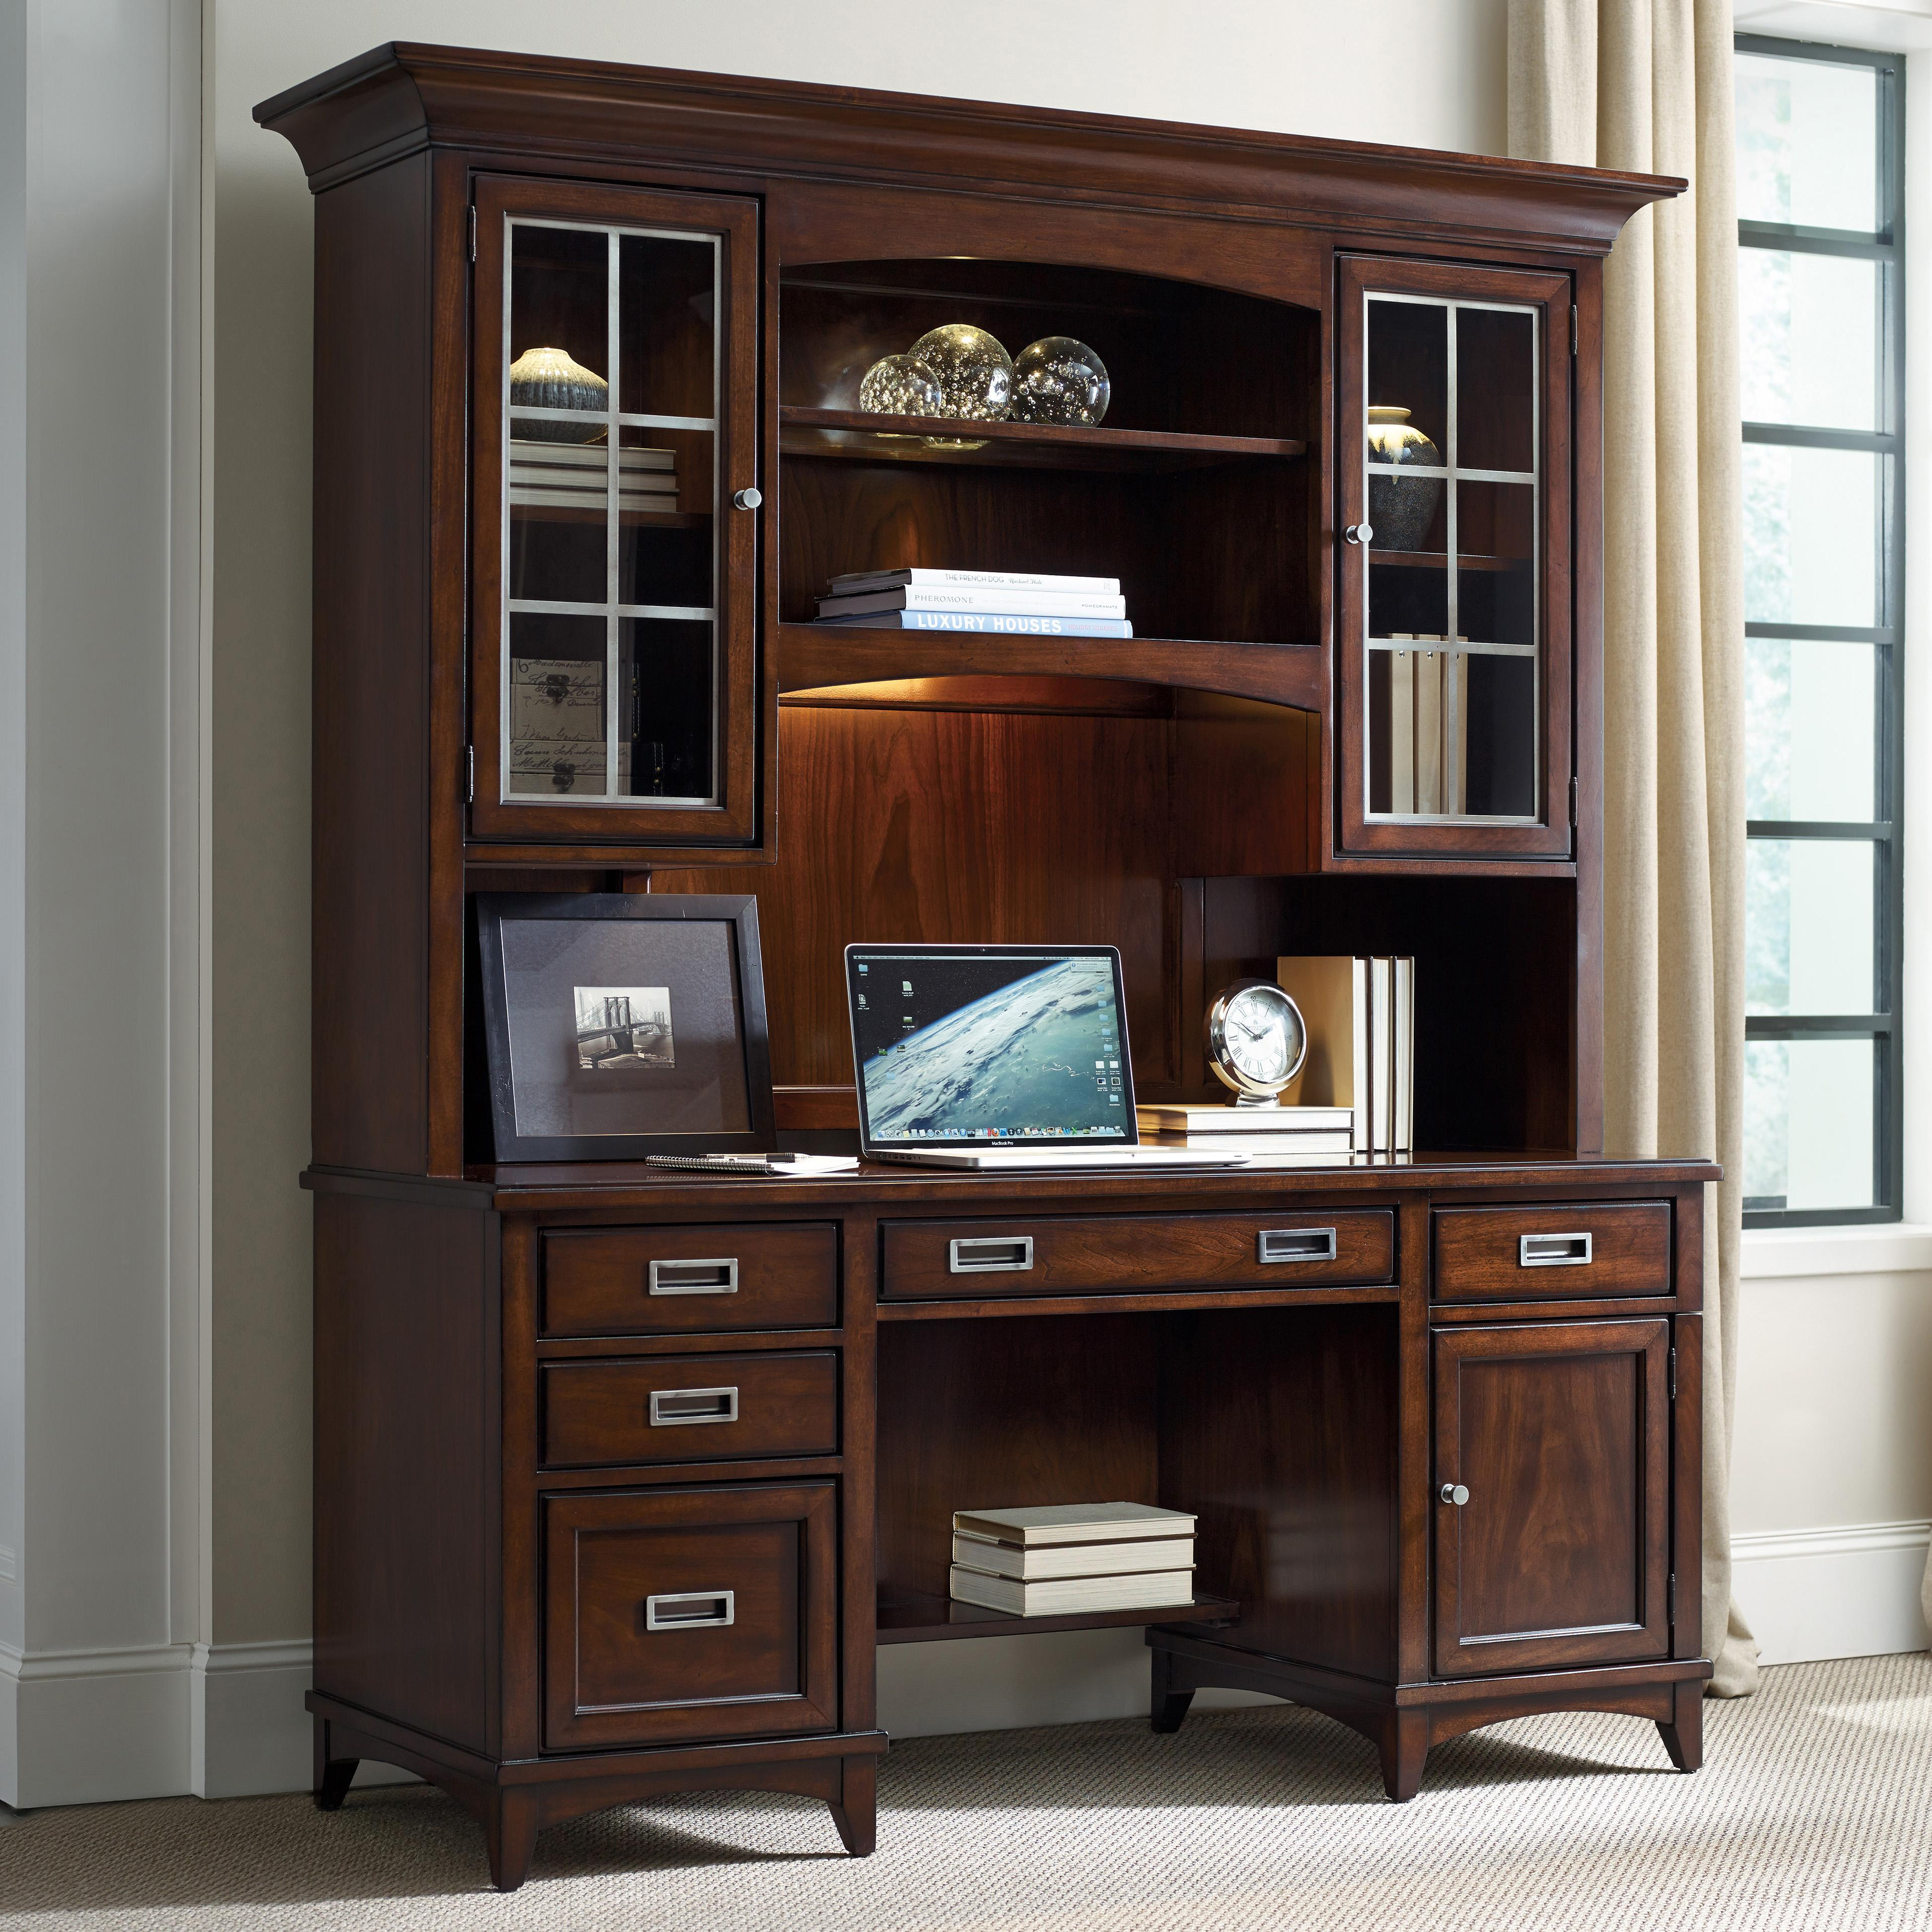 Latitude Credenza and Hutch Set by Hooker Furniture at Stoney Creek Furniture